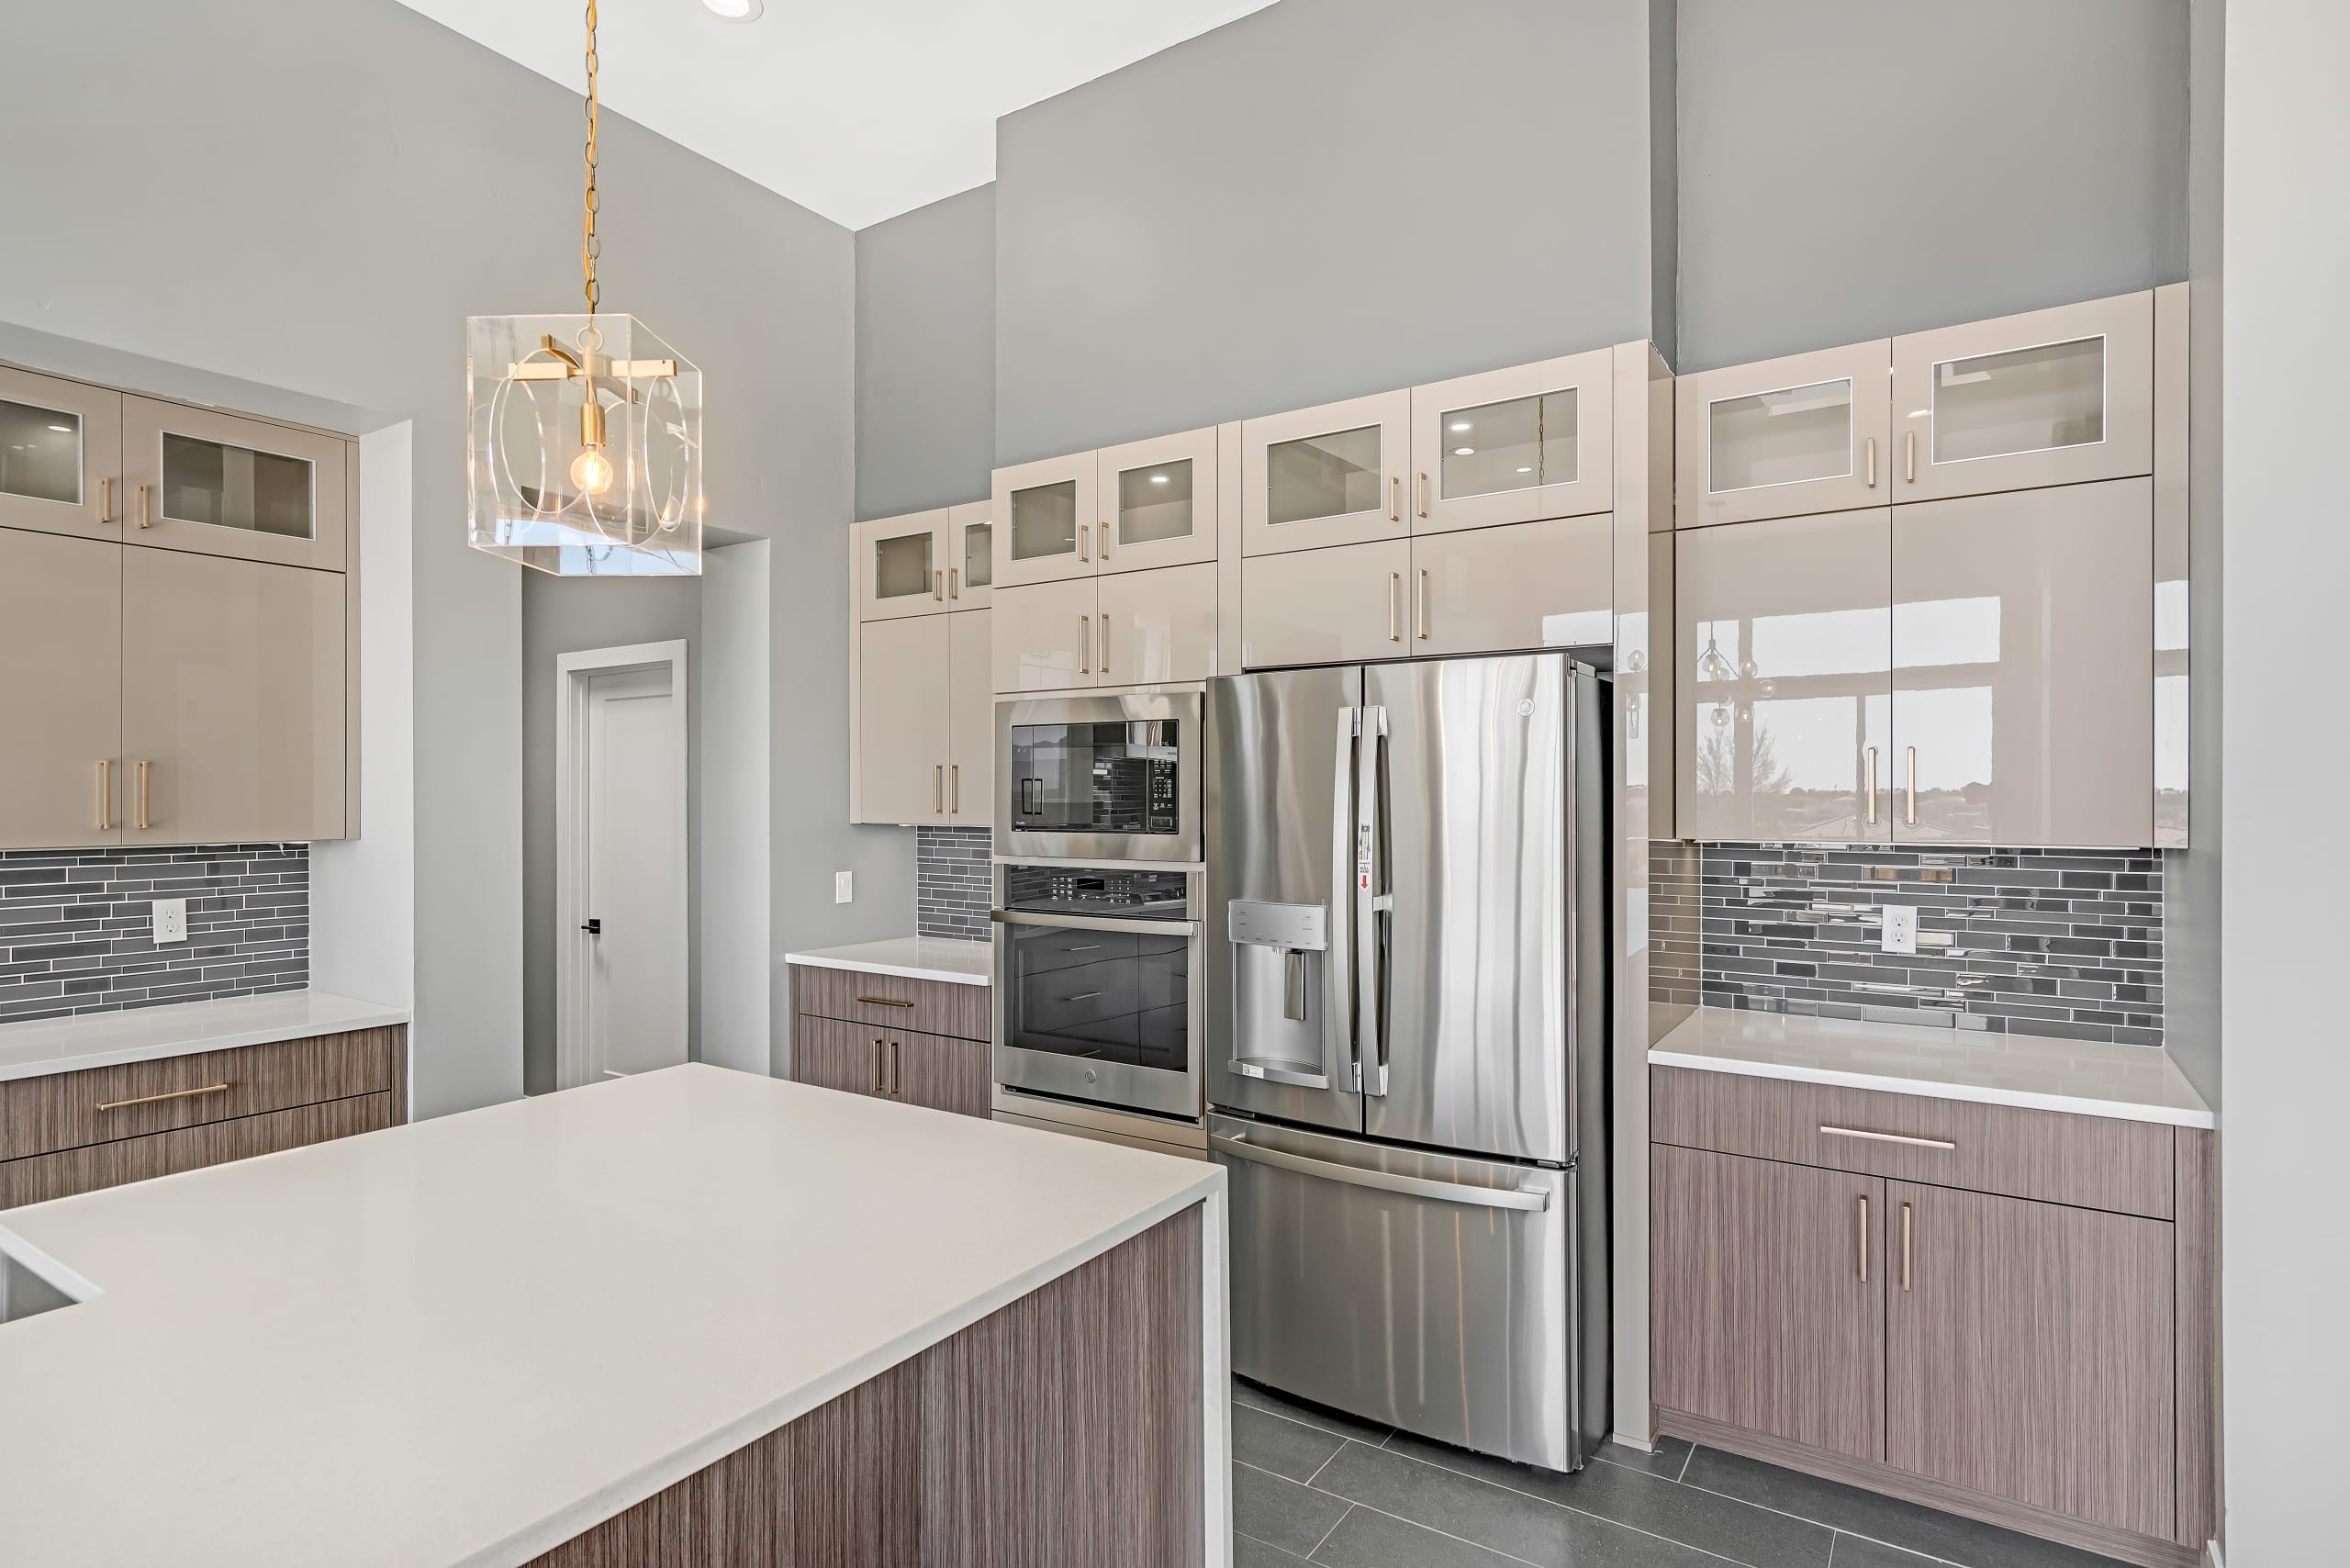 2914 East Springs - Cabinets - Stainless Steel Appliances - Oven - Microwave - Fridge